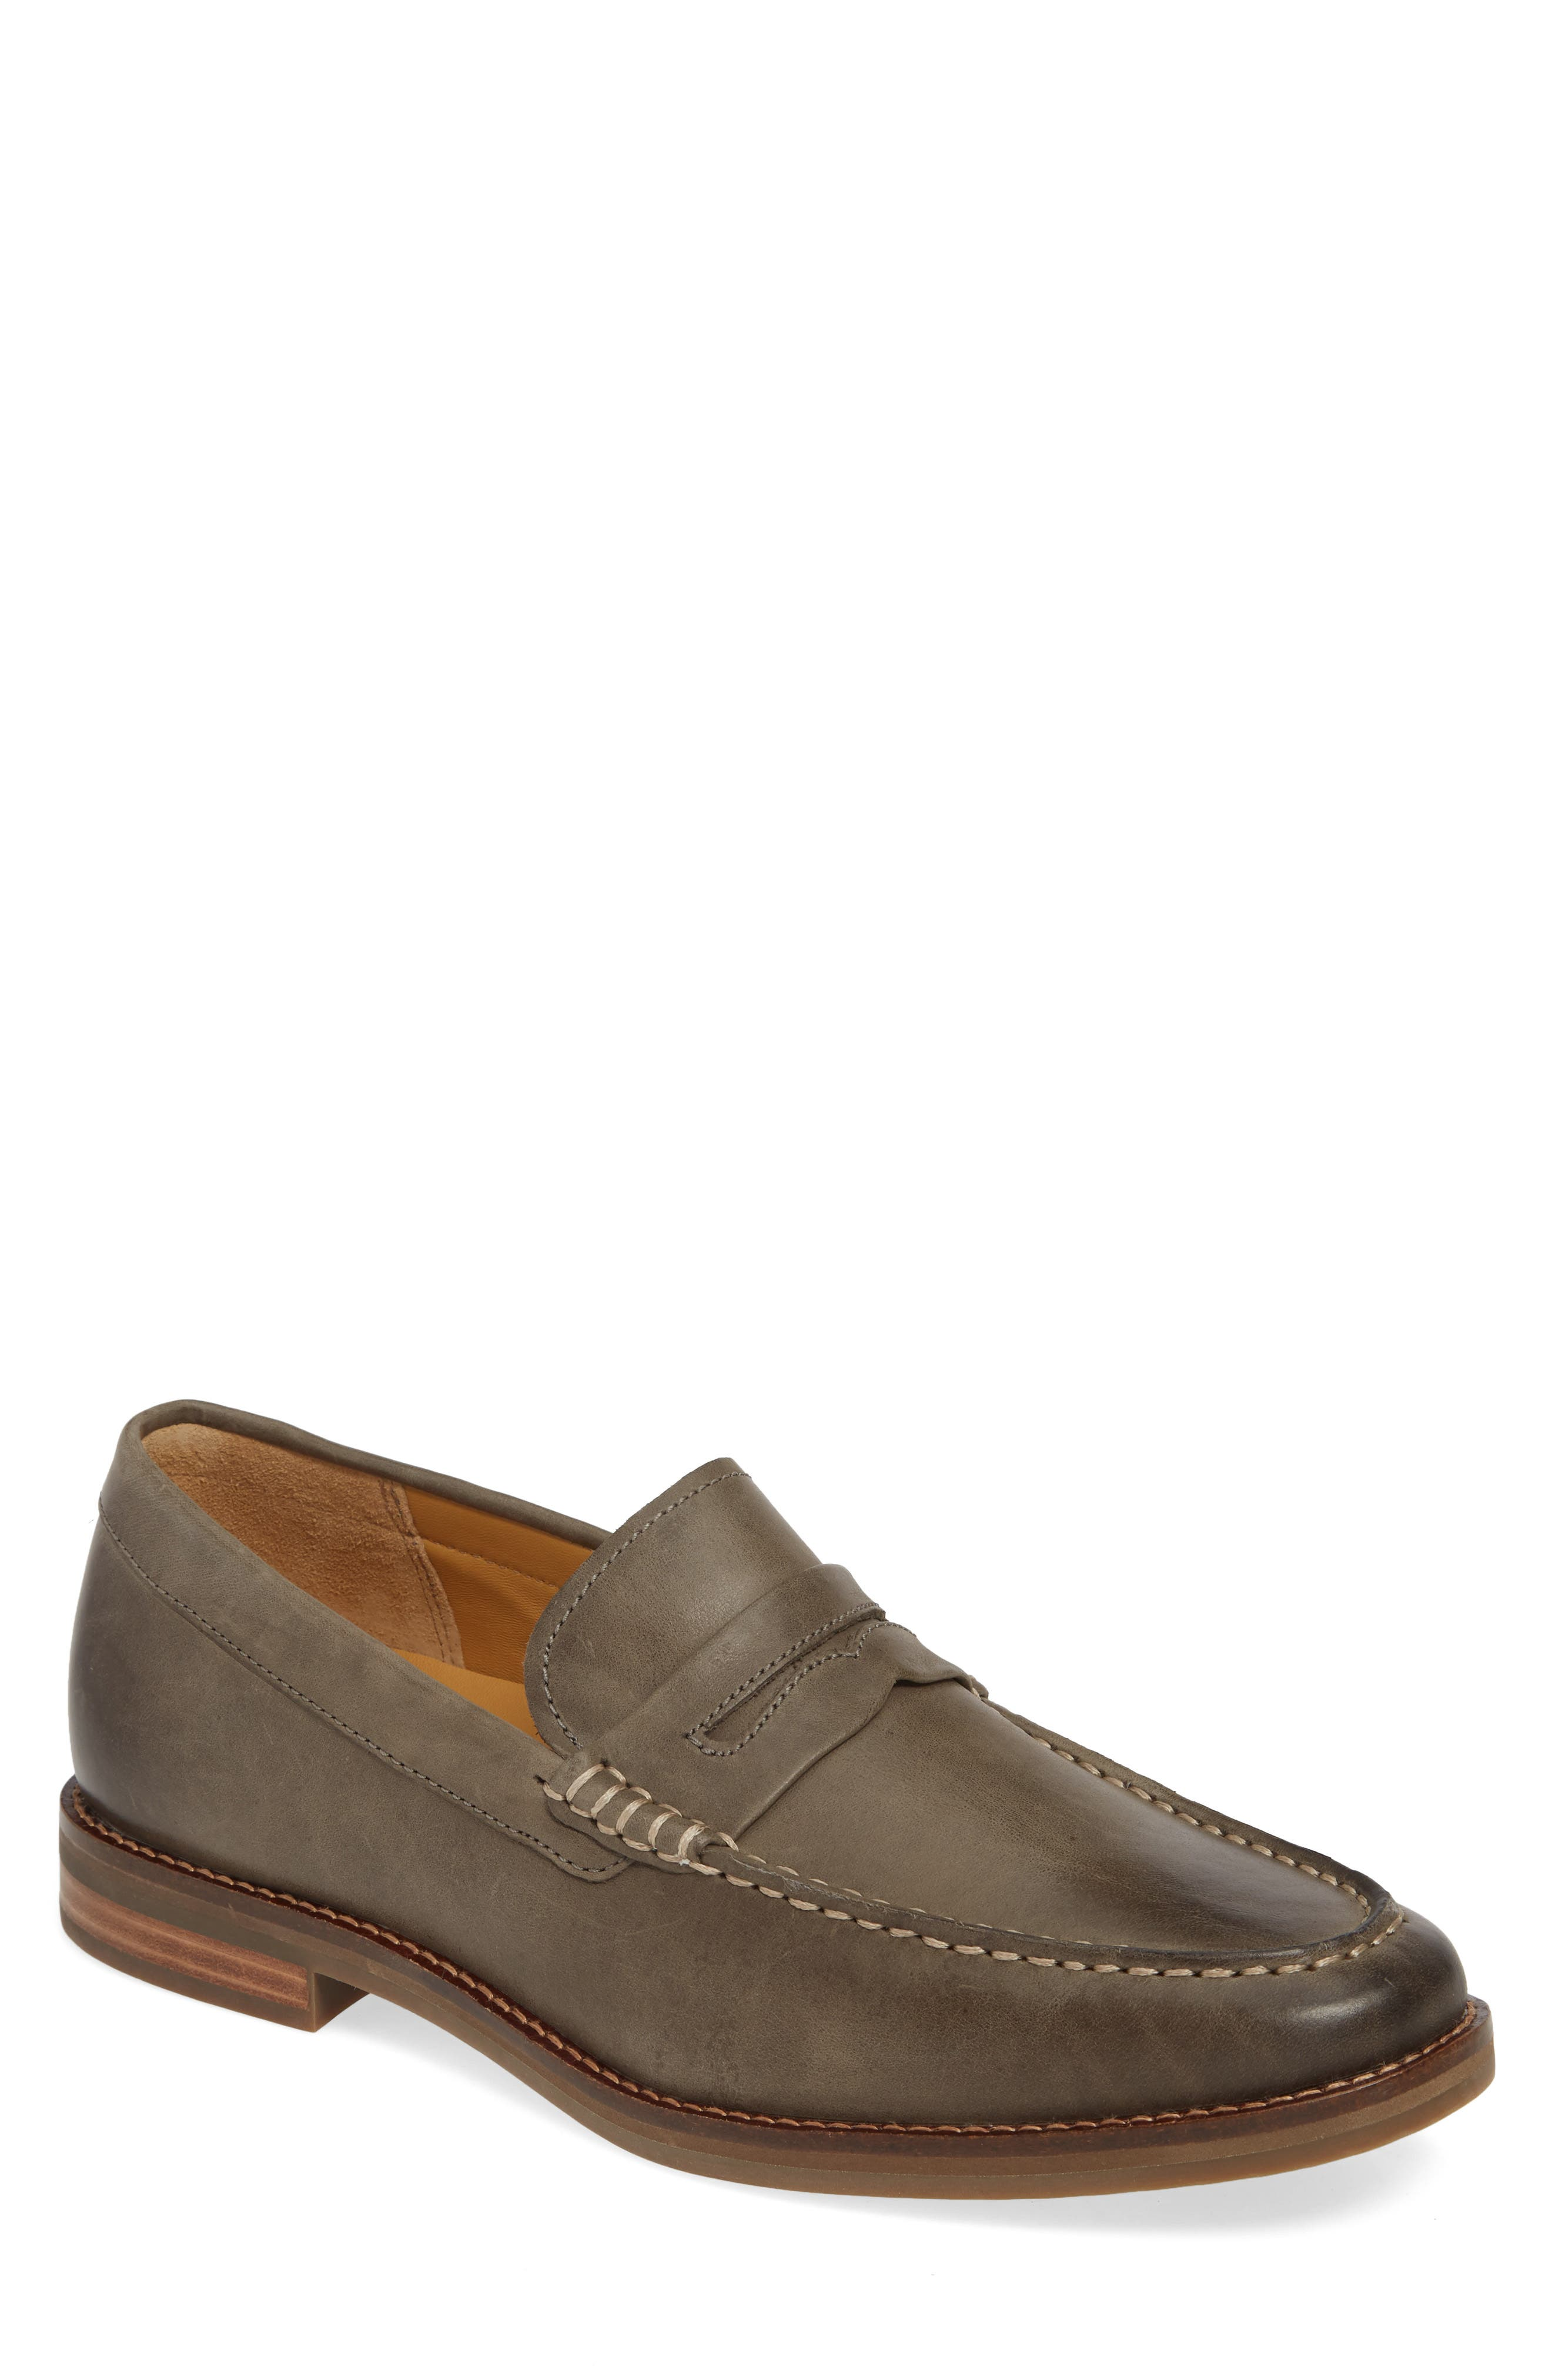 Sperry Exeter Penny Loafer